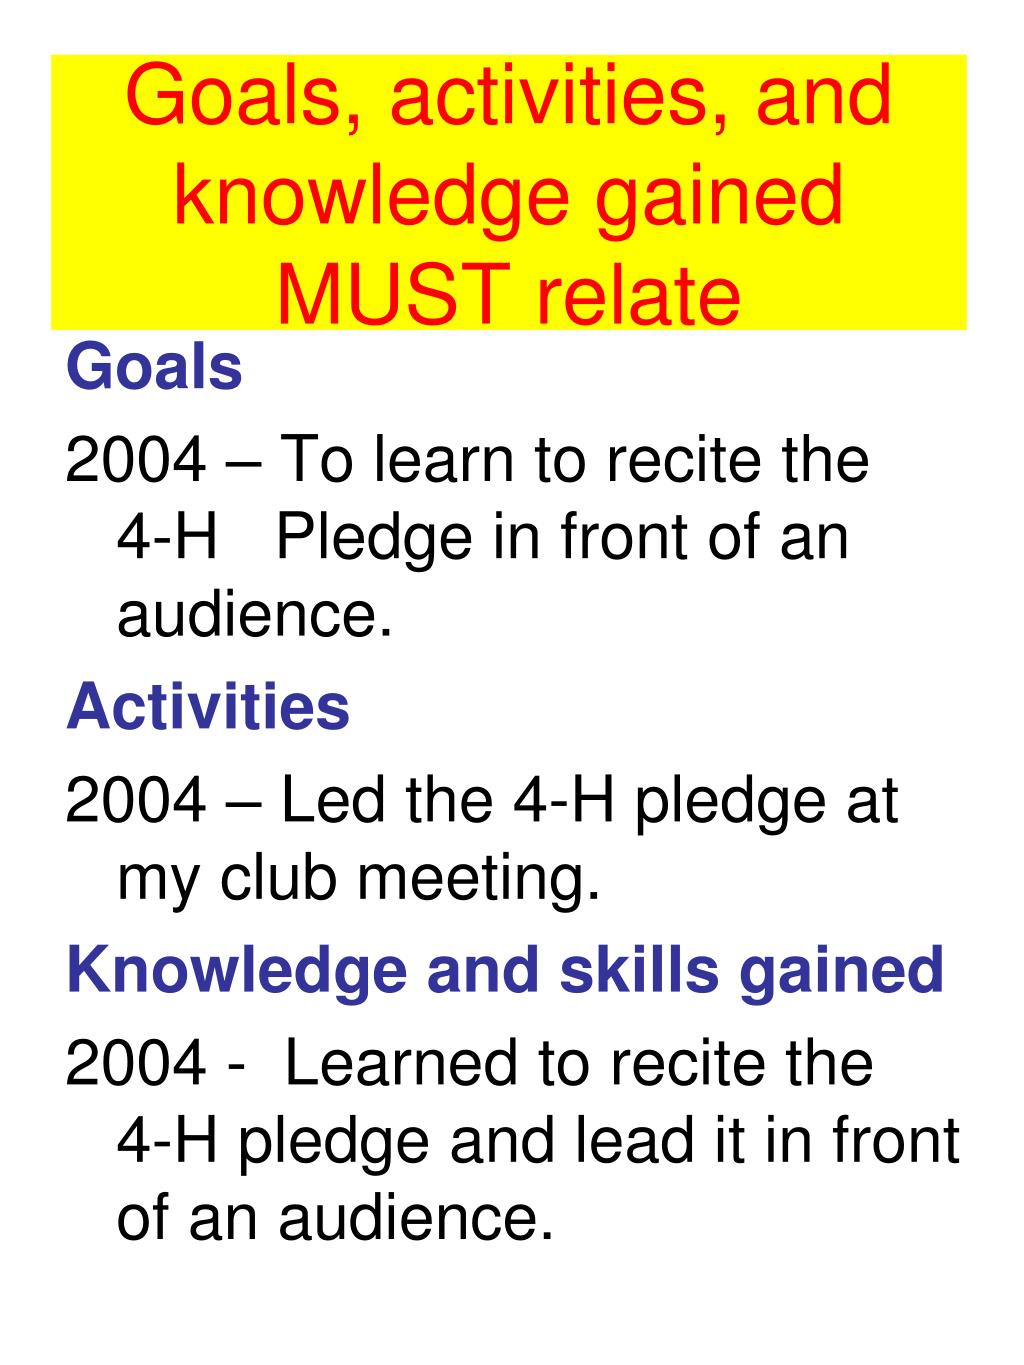 Goals, activities, and knowledge gained MUST relate